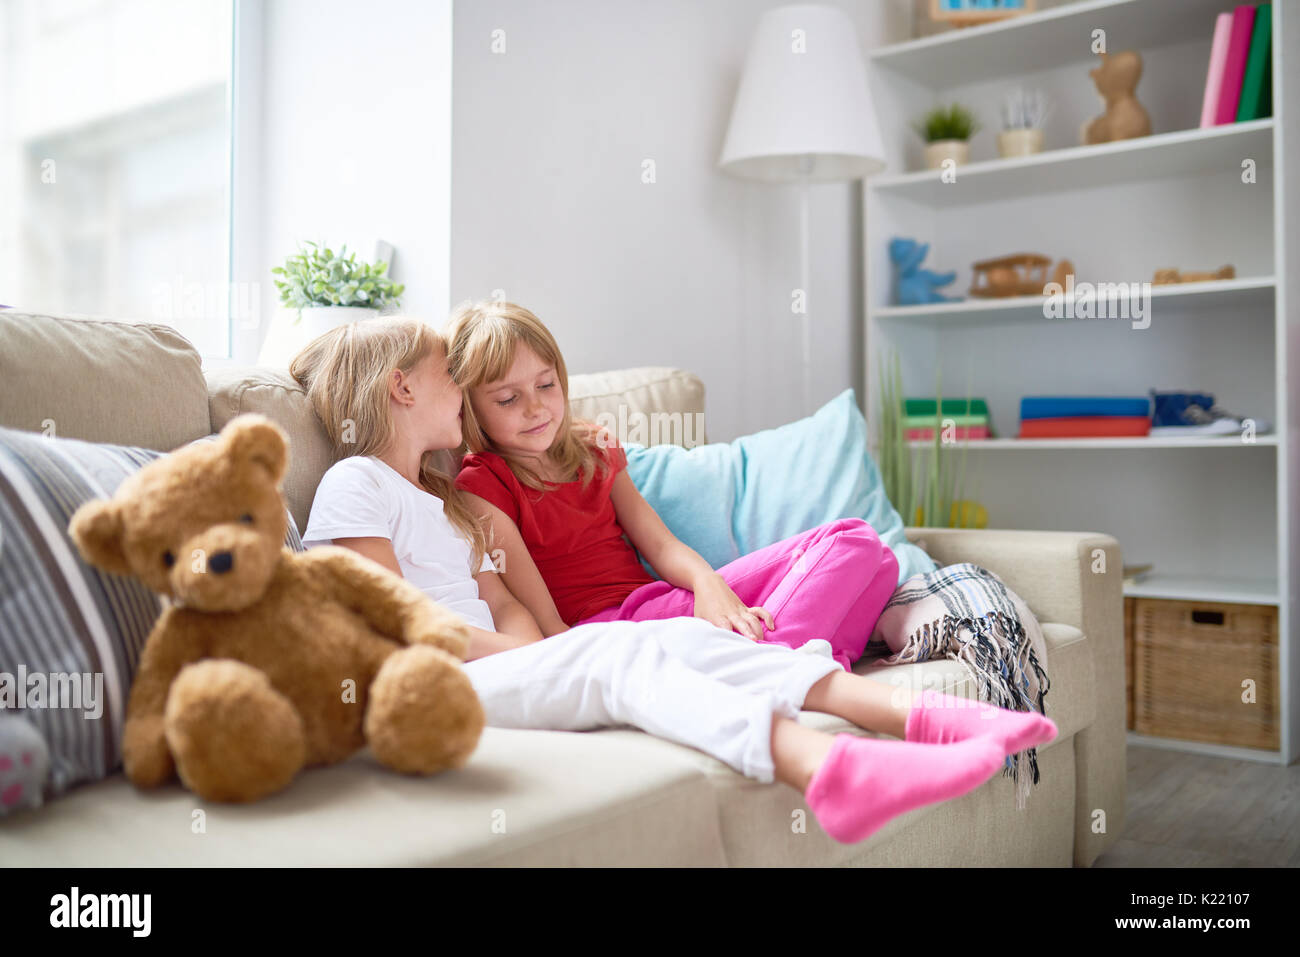 Secrets of Little Girls - Stock Image